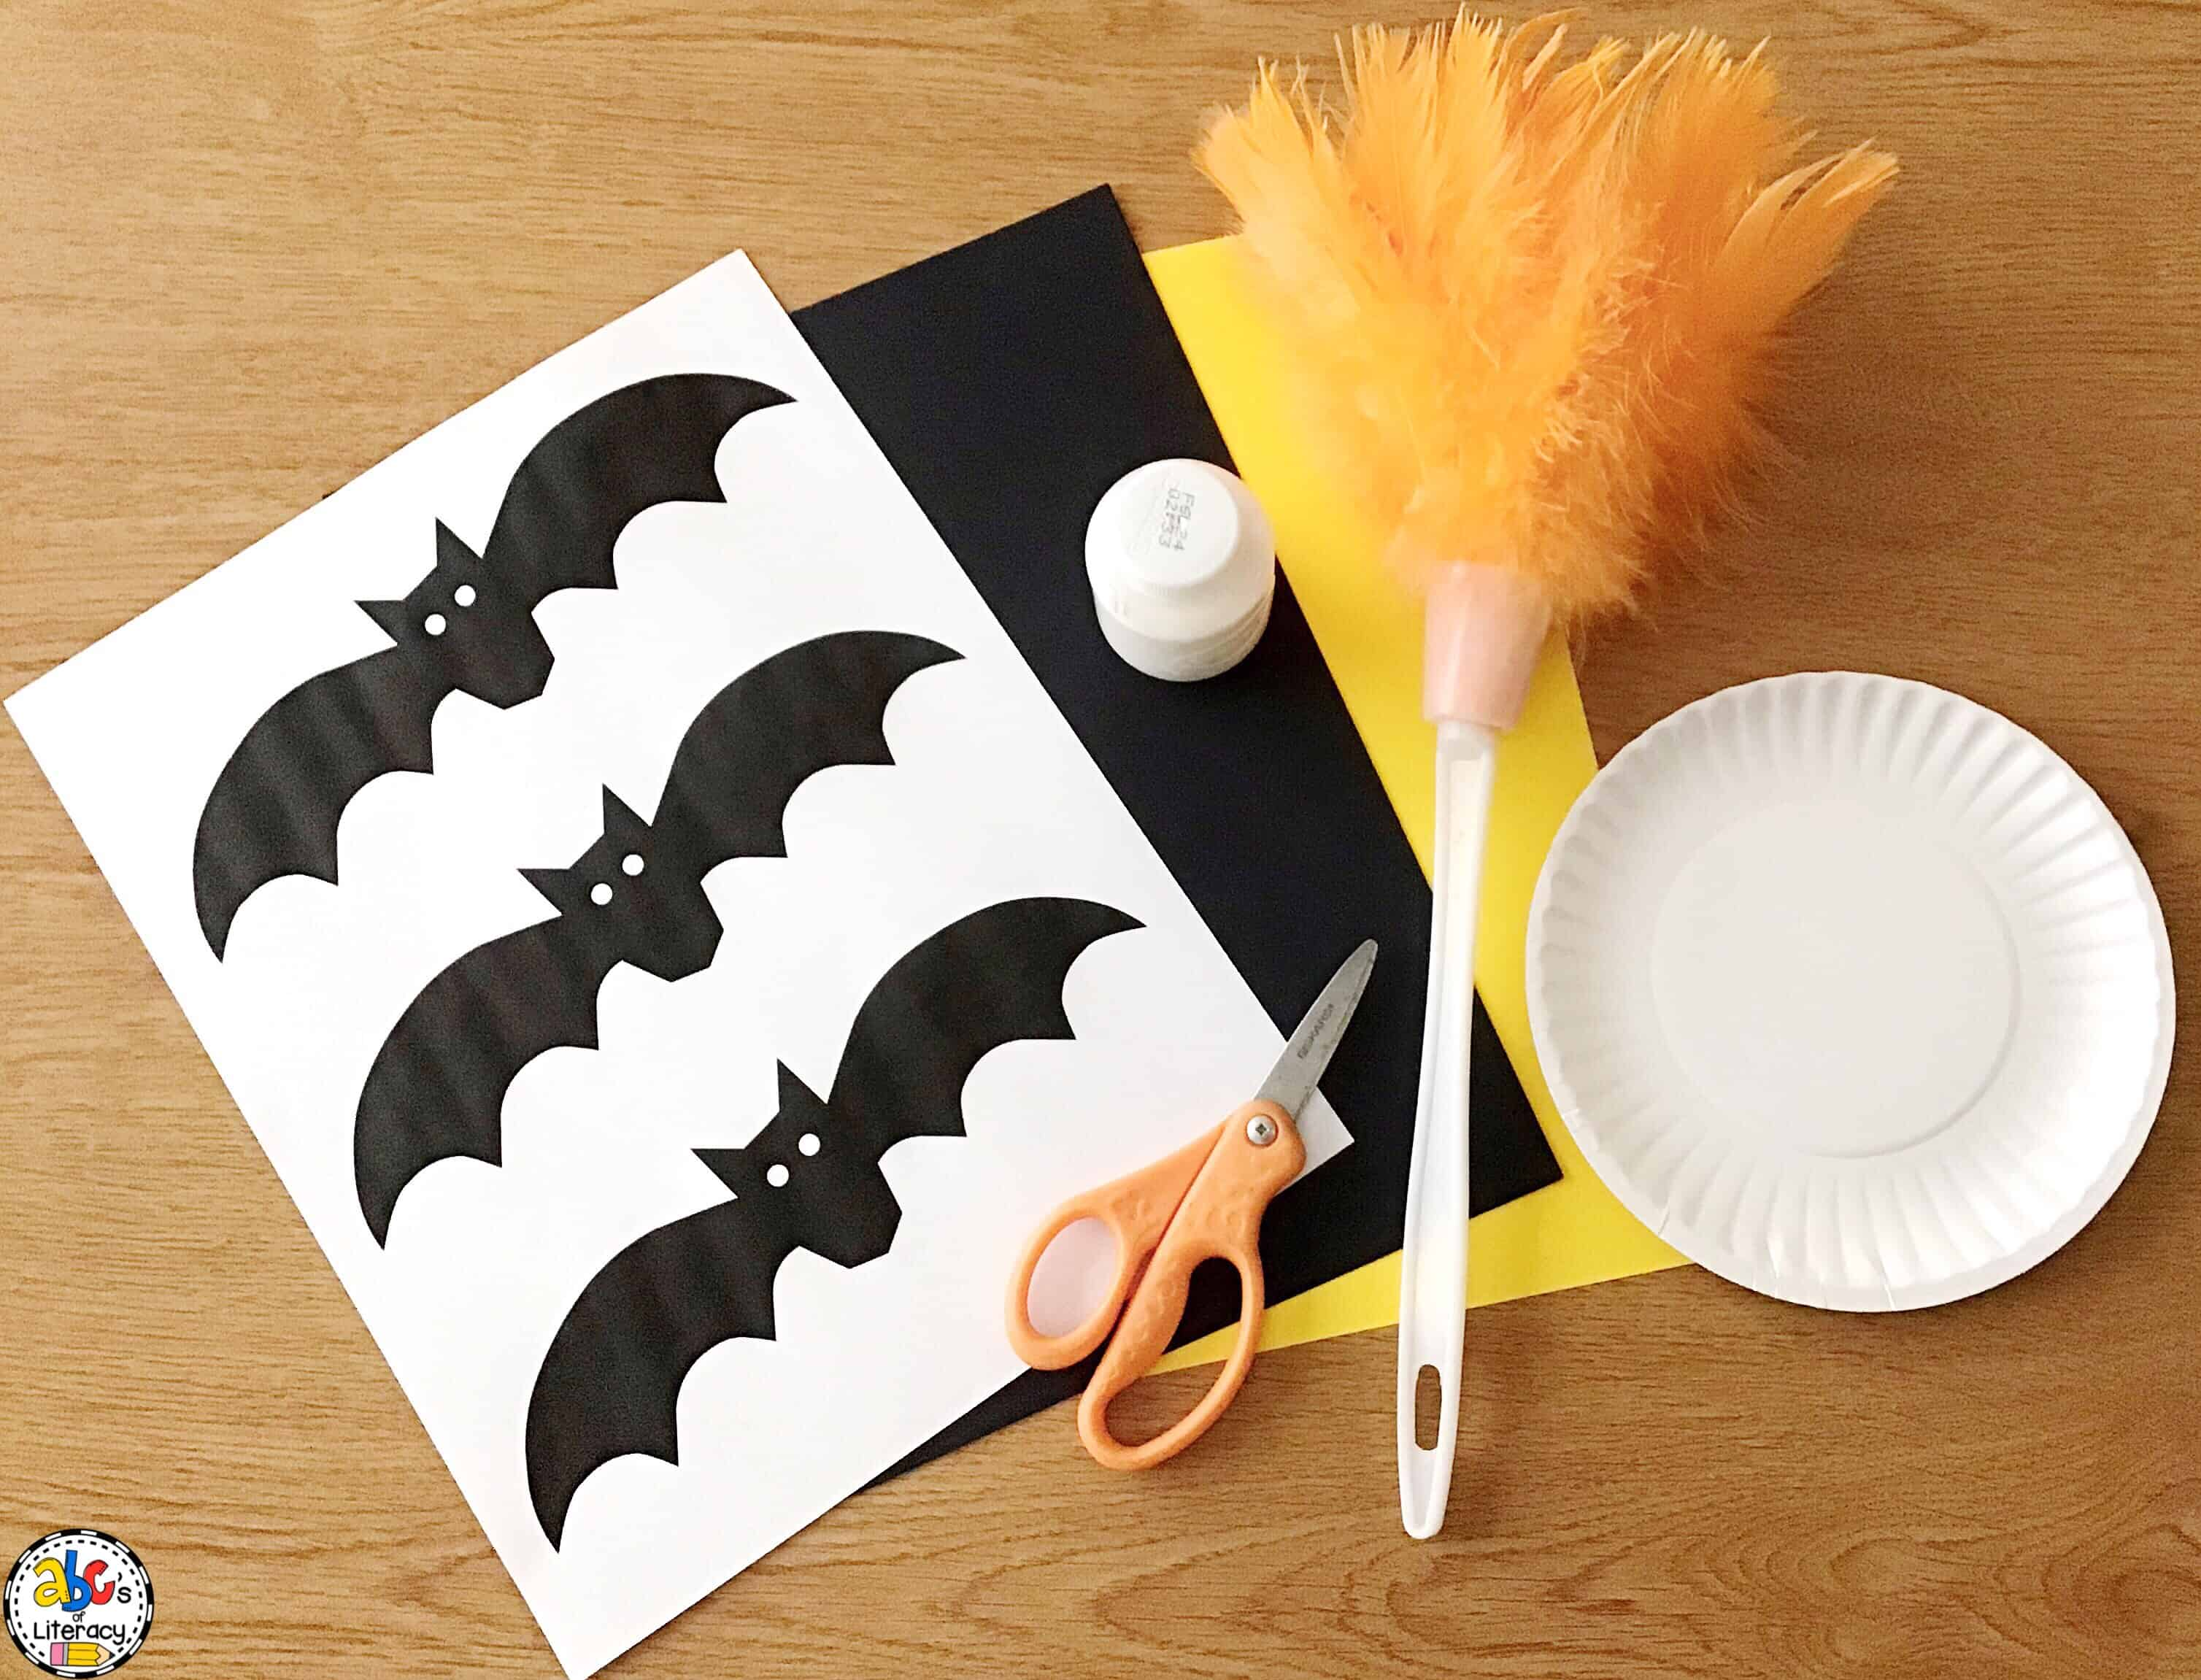 How To Make A Bat Silhouette Craft For Halloween Or Bat Unit